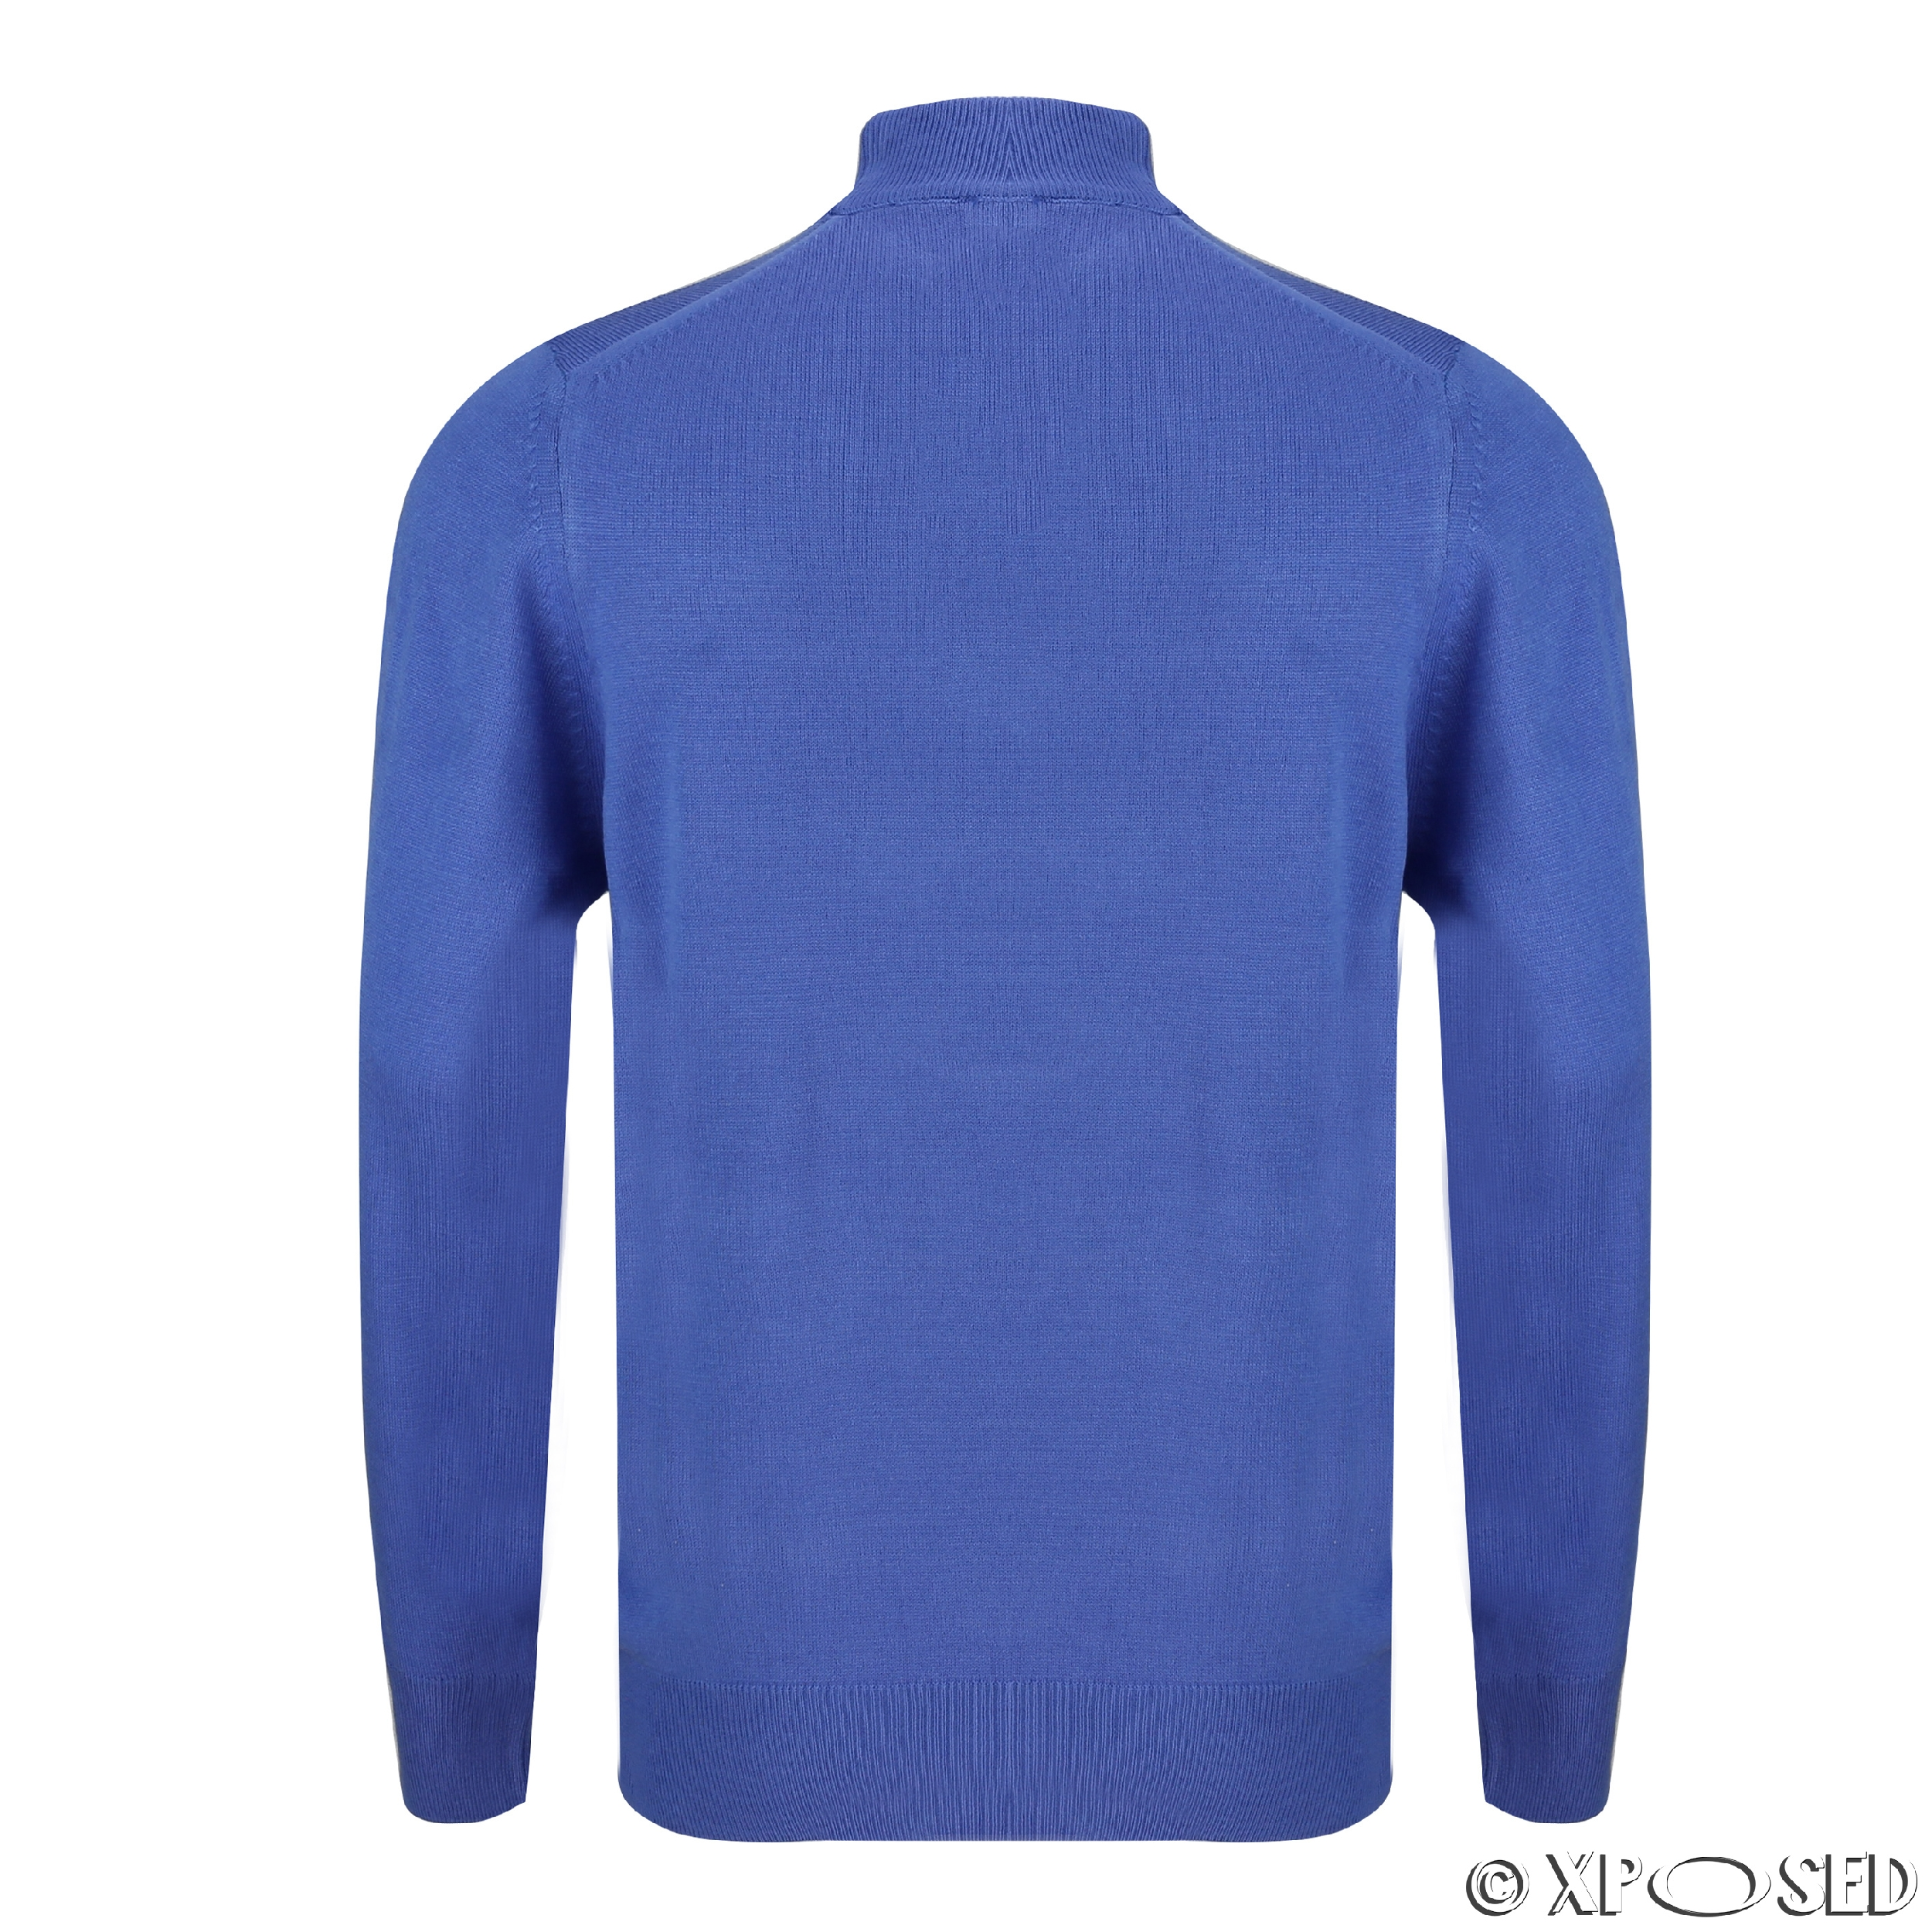 Knitting Wear Company : New men s plain jumper round crew neck pullover soft knit